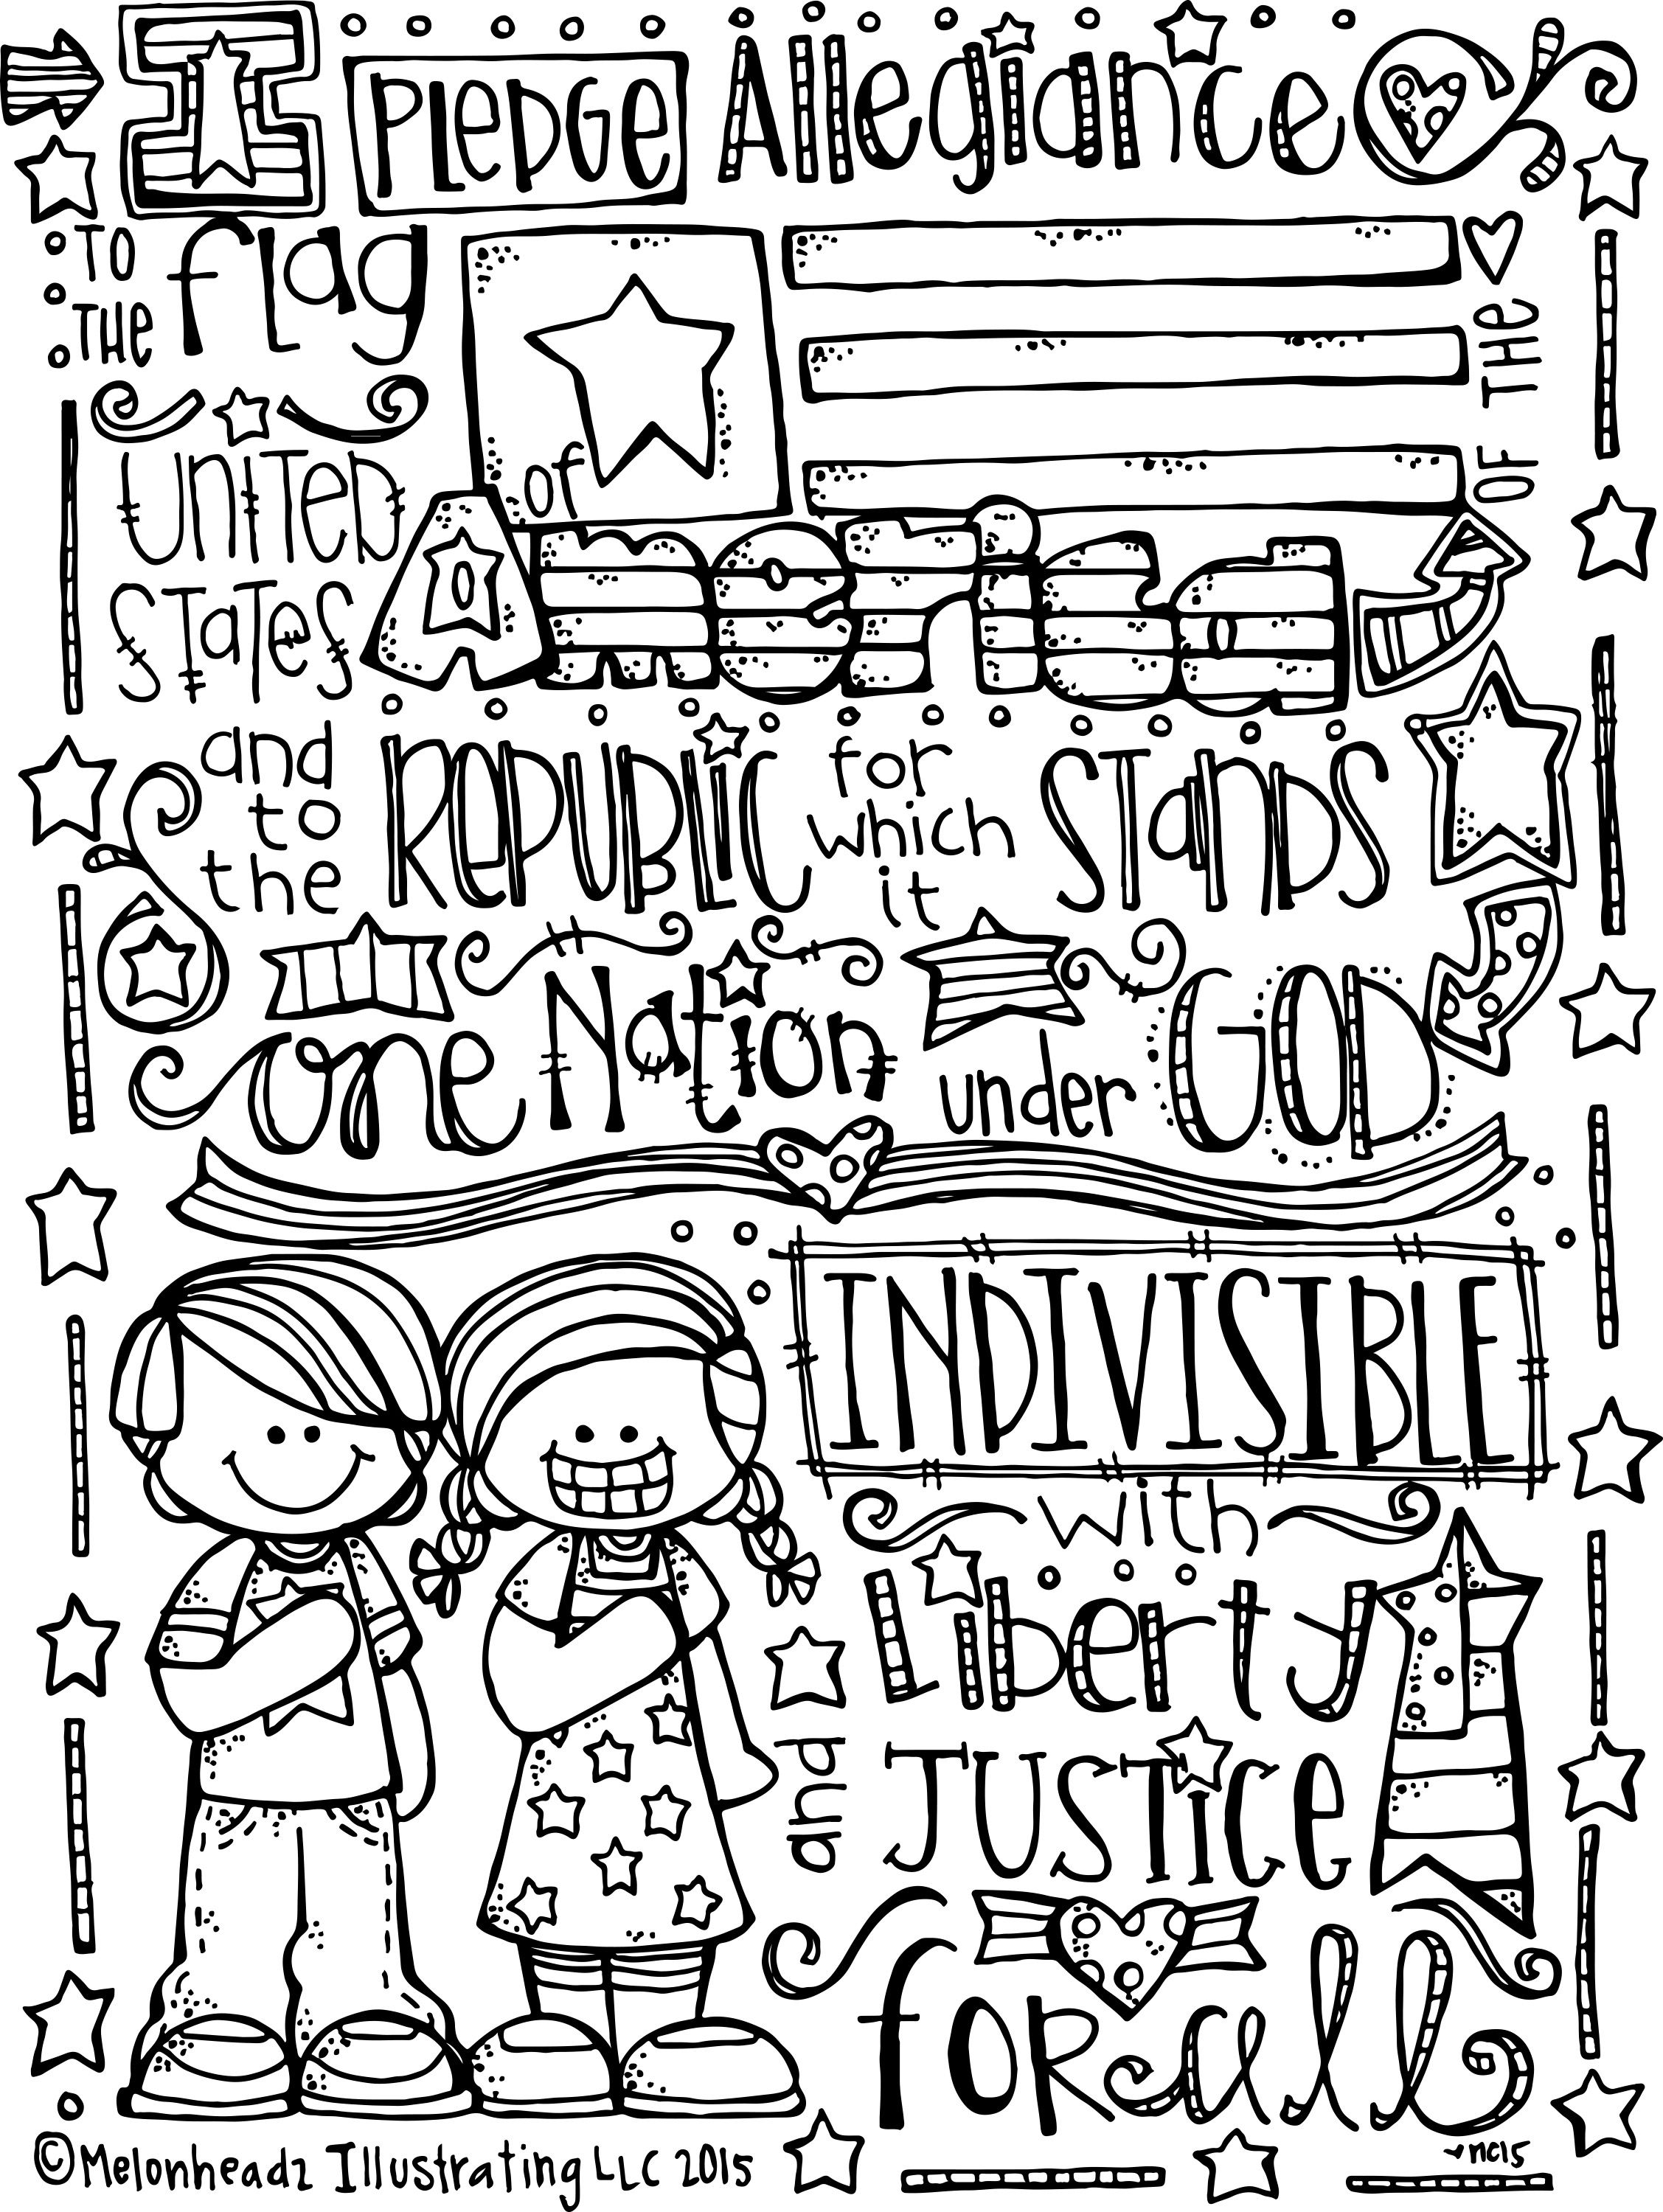 Pledge of allegiance coloring page freebie by melonheadz in